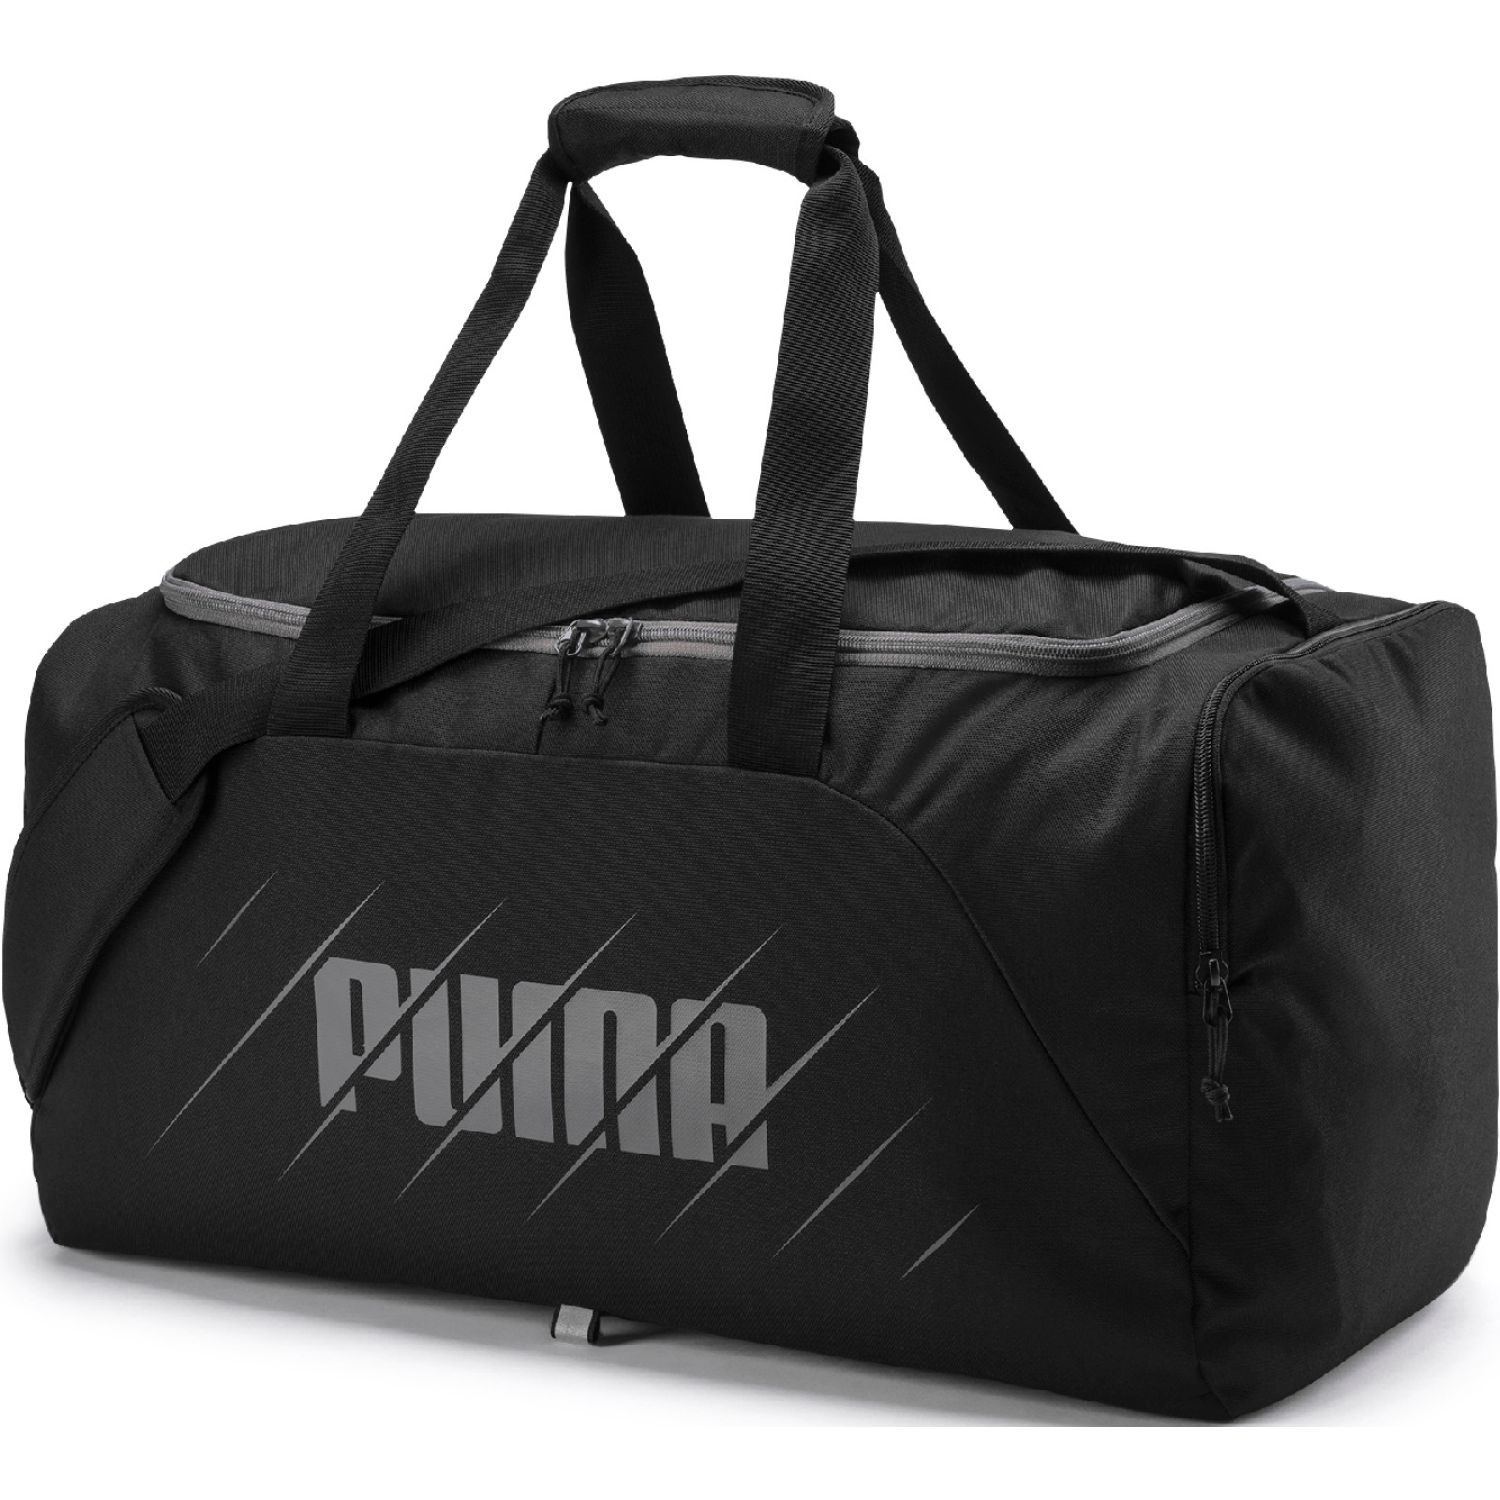 Puma Ftblplay Medium Bag Negro Bolsos de gimnasio